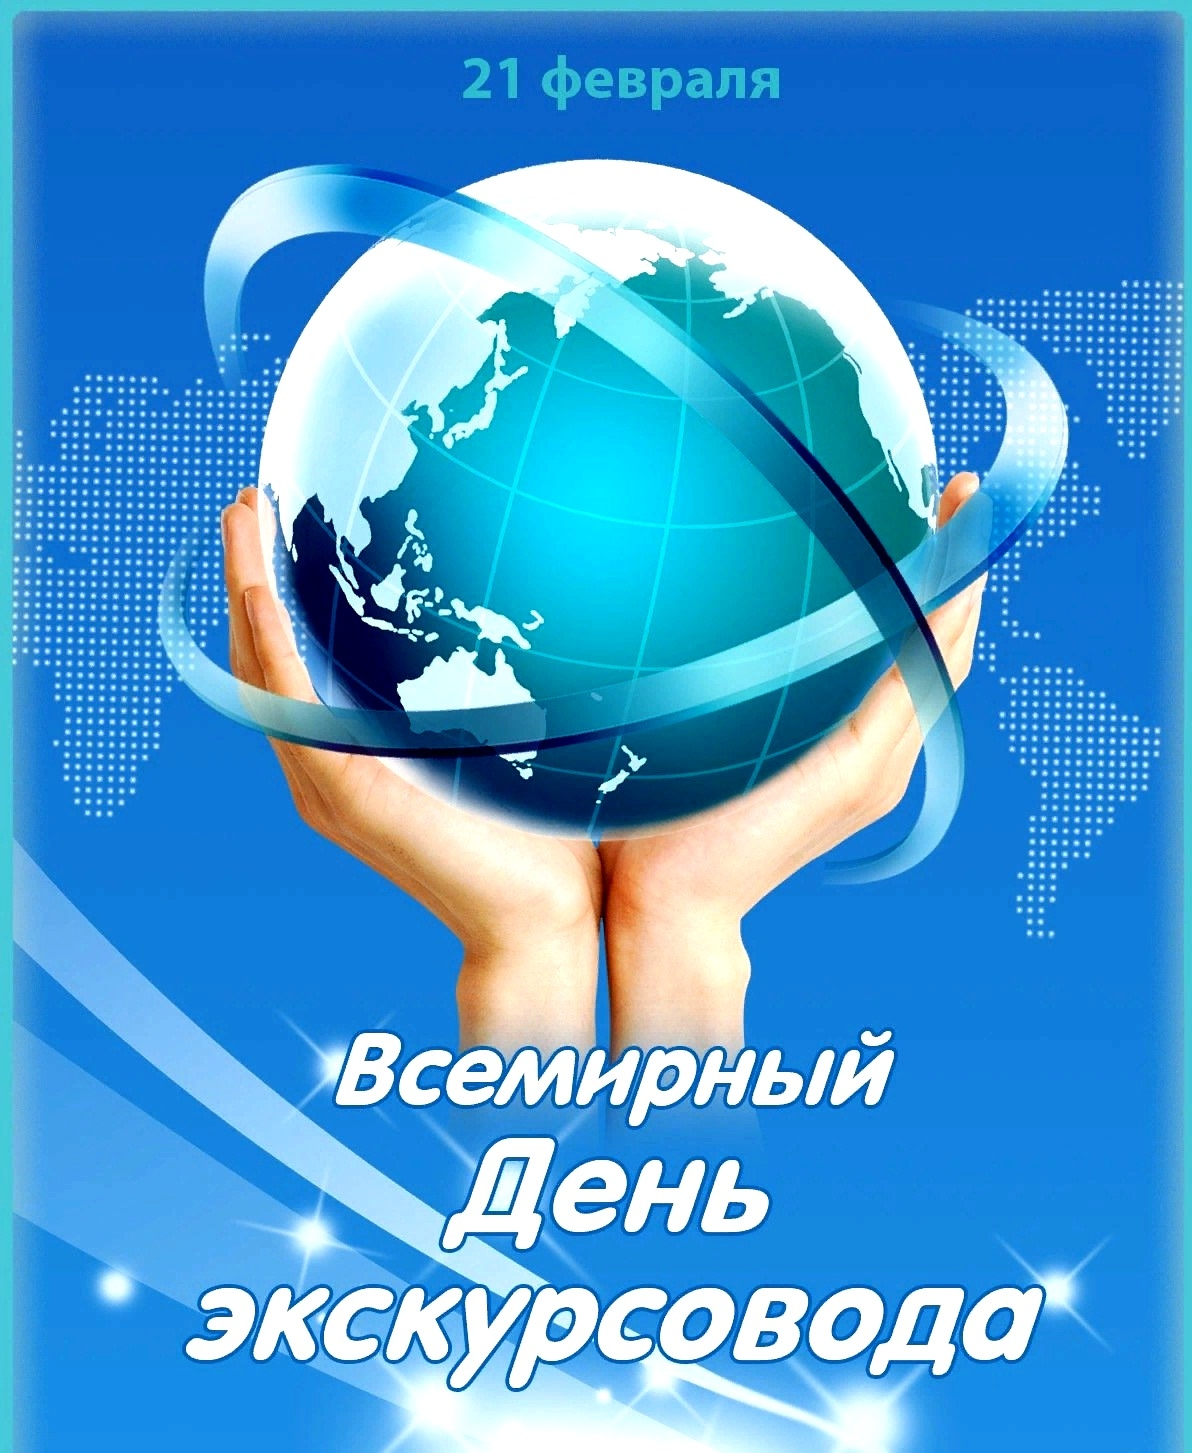 International Tourist Guide Day